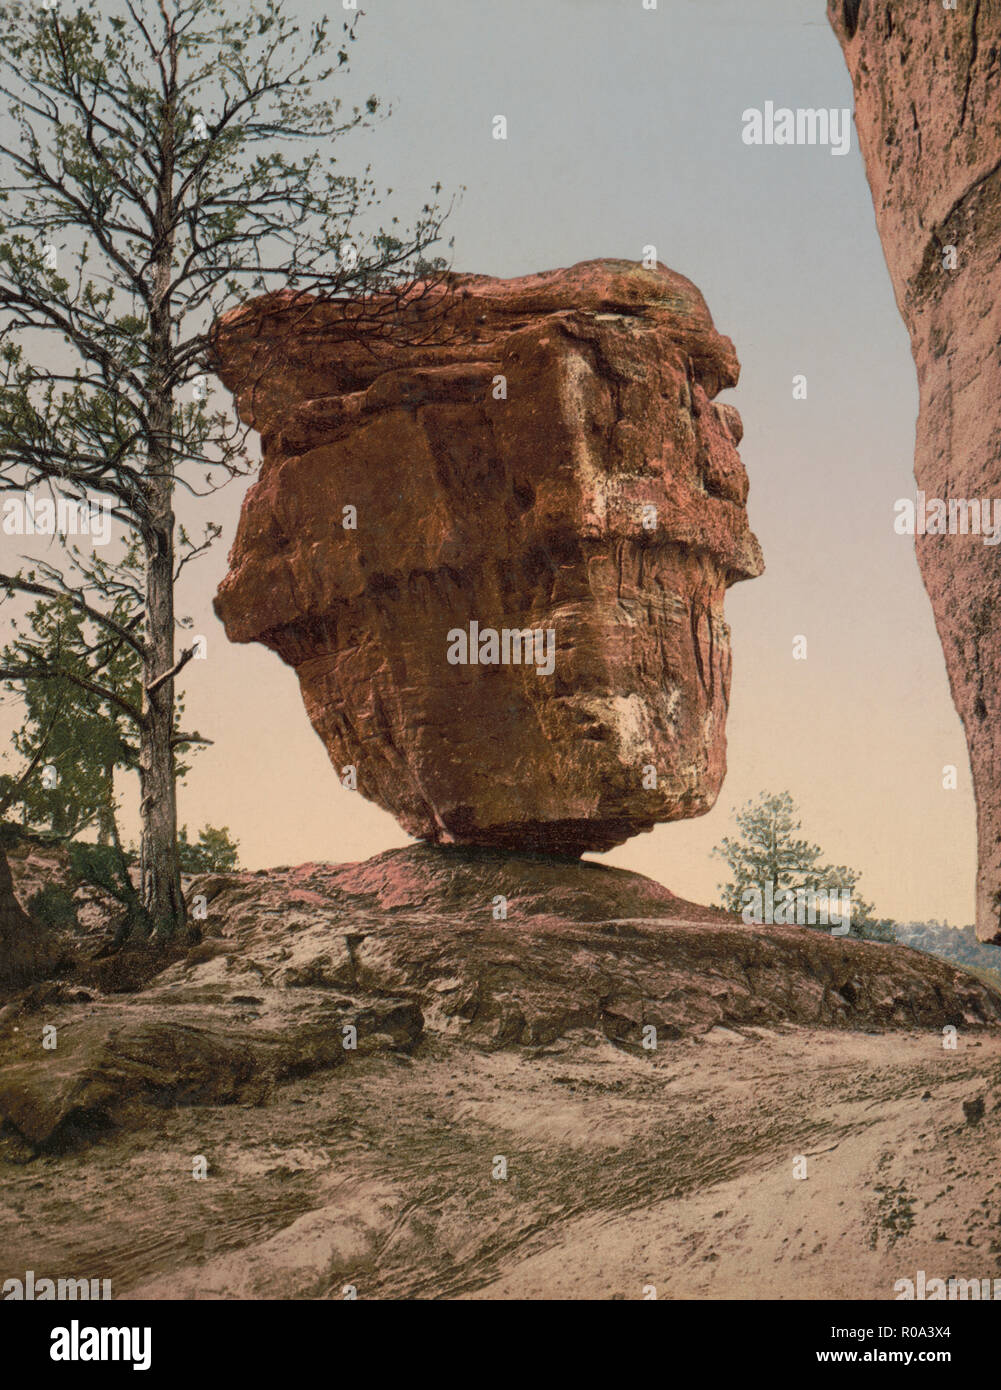 Giant Balancing Sandstone Rock, Garden of the Gods, Colorado Springs, Colorado, USA, William Henry Jackson for Detroit Publishing Company, 1905 Stock Photo